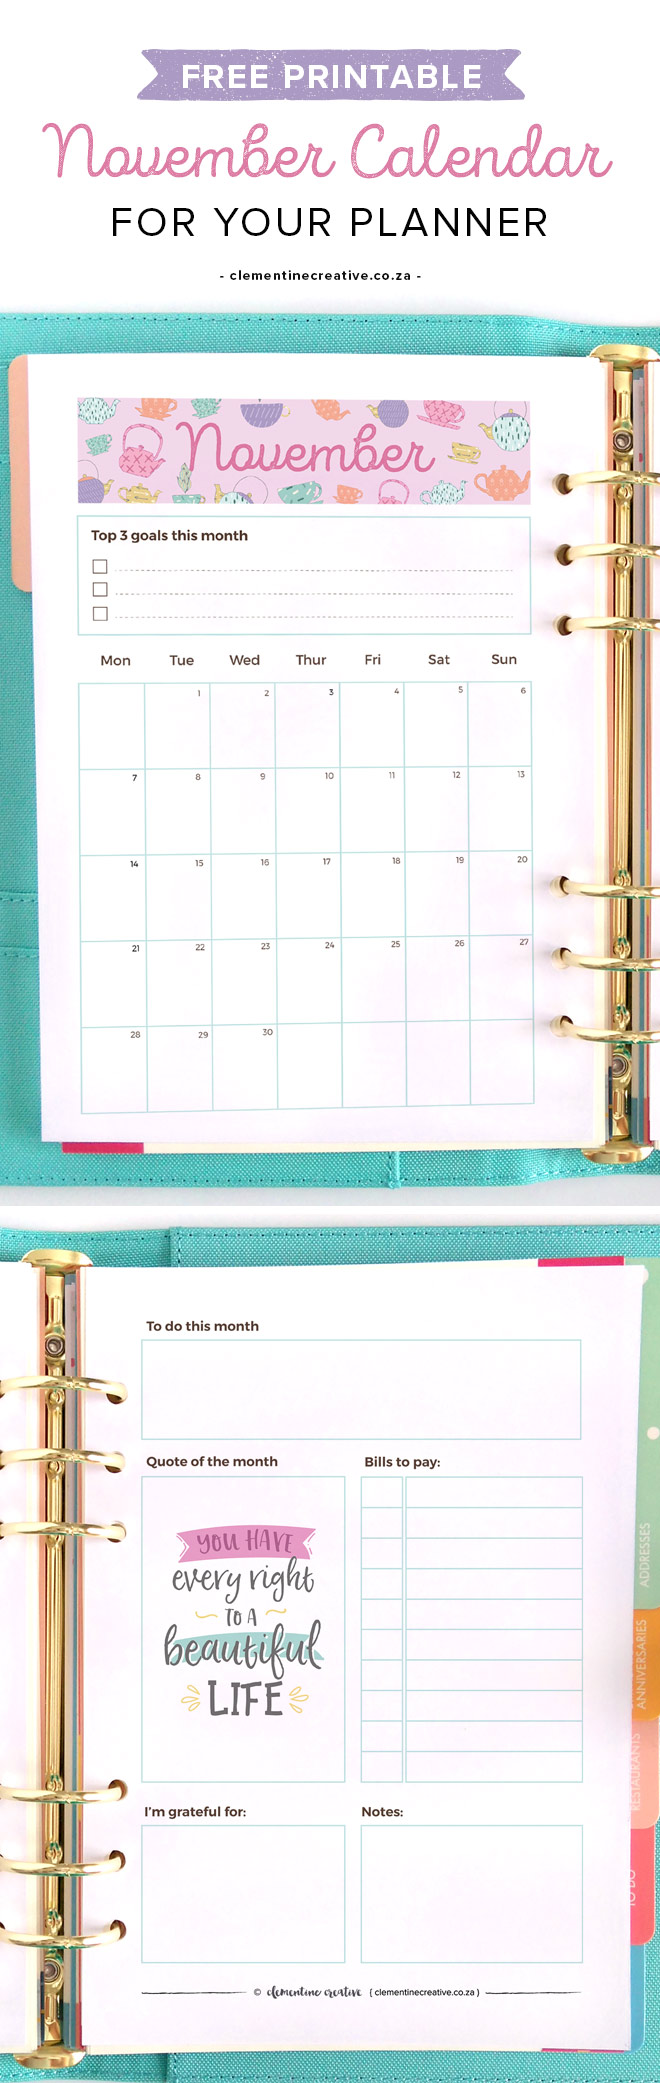 Calendar Za : Free printable november monthly planner